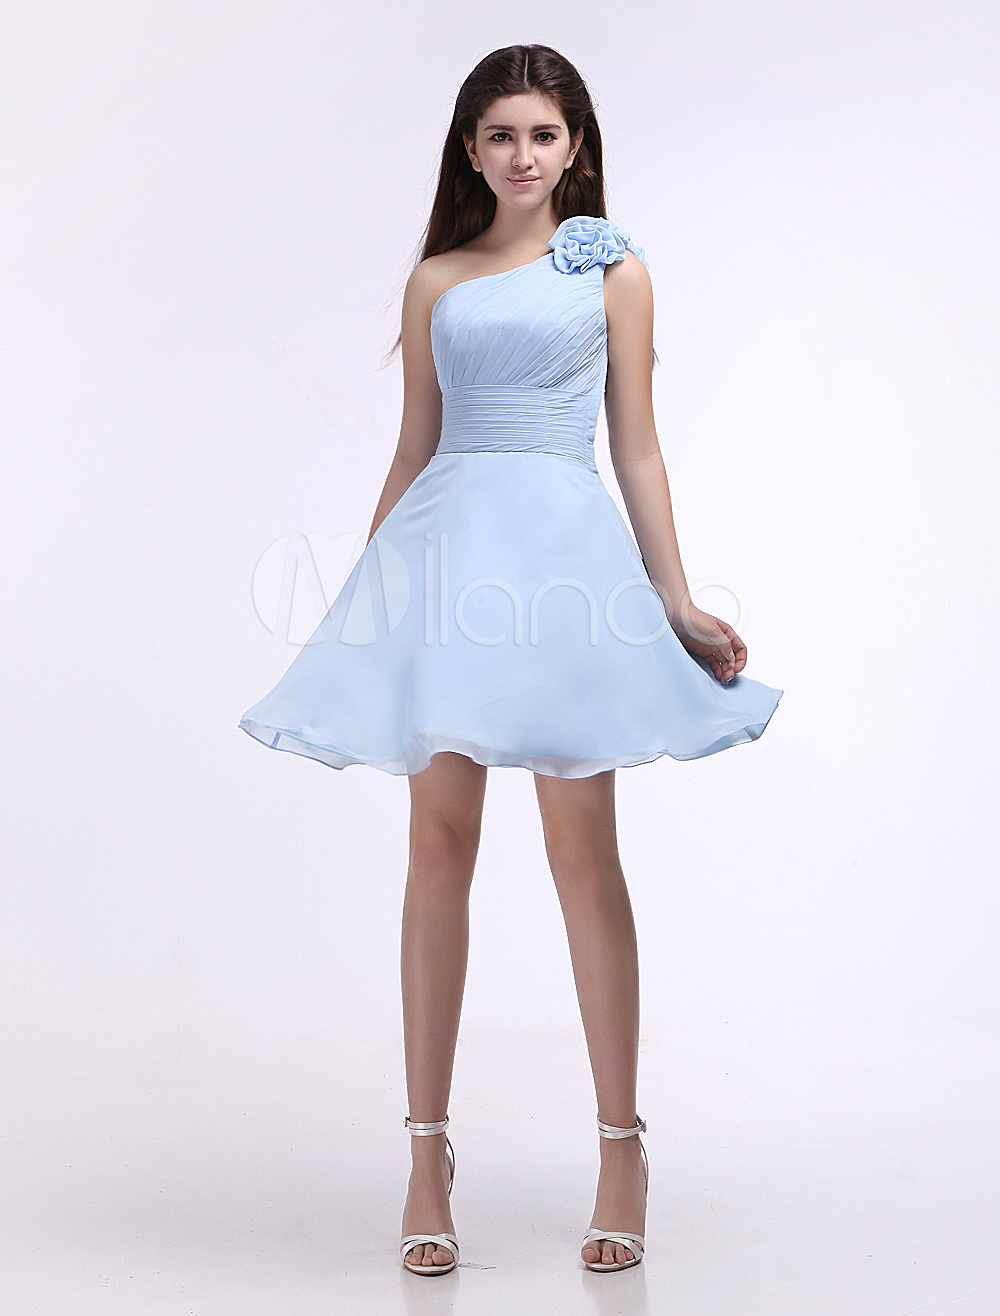 Chiffon Bridesmaid Dress Baby Blue One Shoulder Knee Length Flowers Prom Milanoo